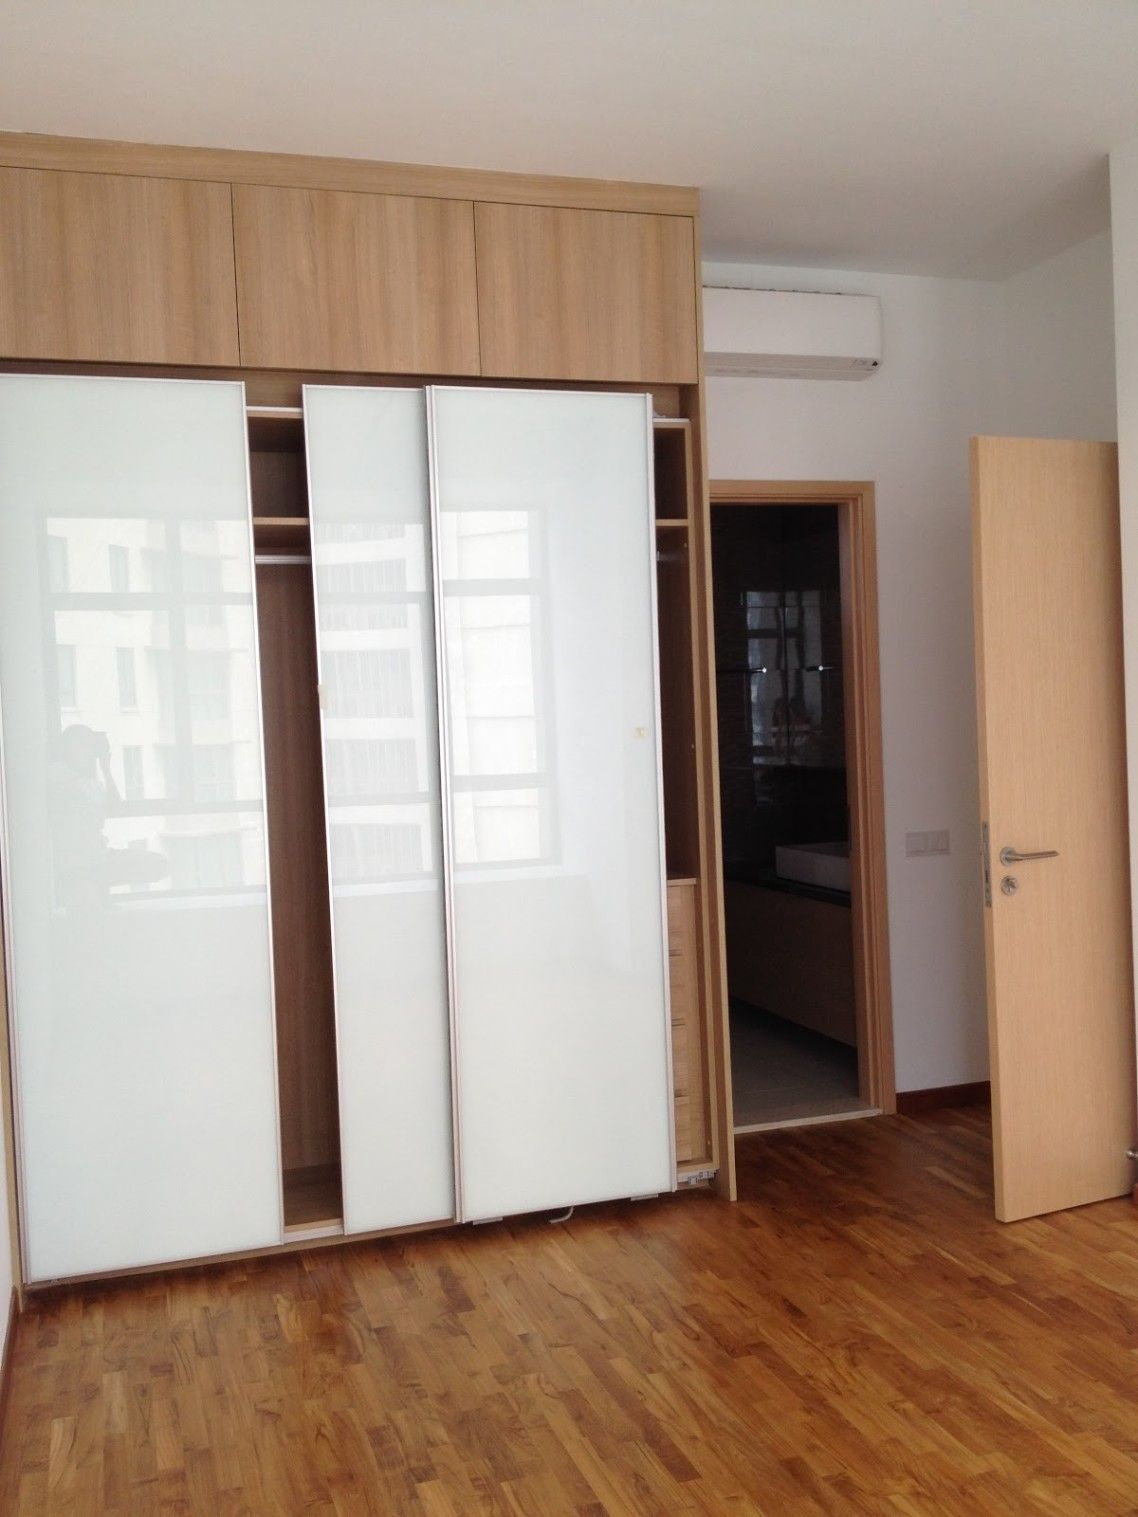 Unpolished Oak Wood Buil In Wardrobe For Small Bedroom